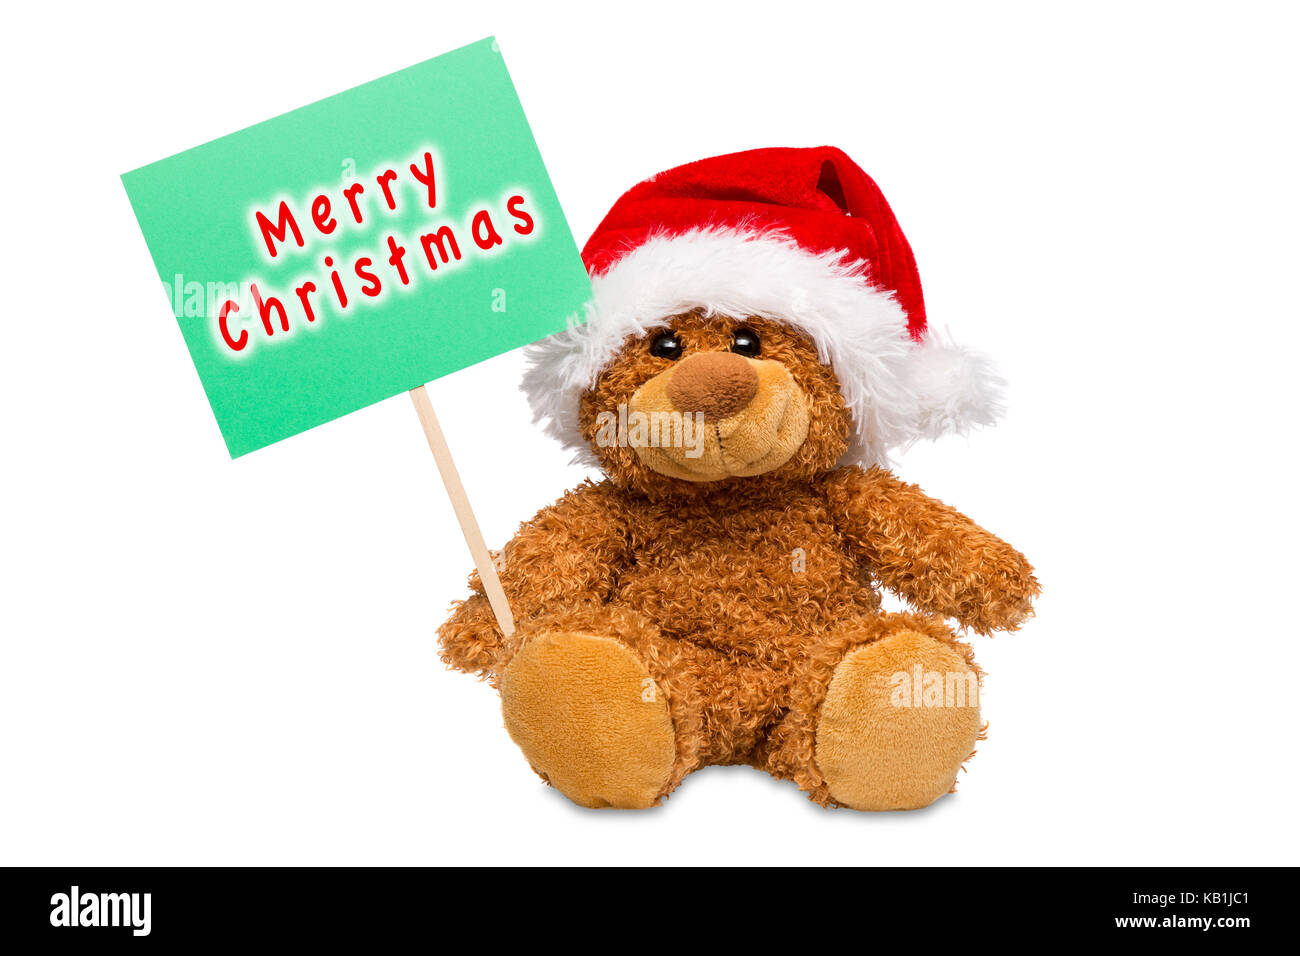 4c84ea7453815 A teddy bear wearing a Santa hat holding a sign with Merry Christmas  written on it